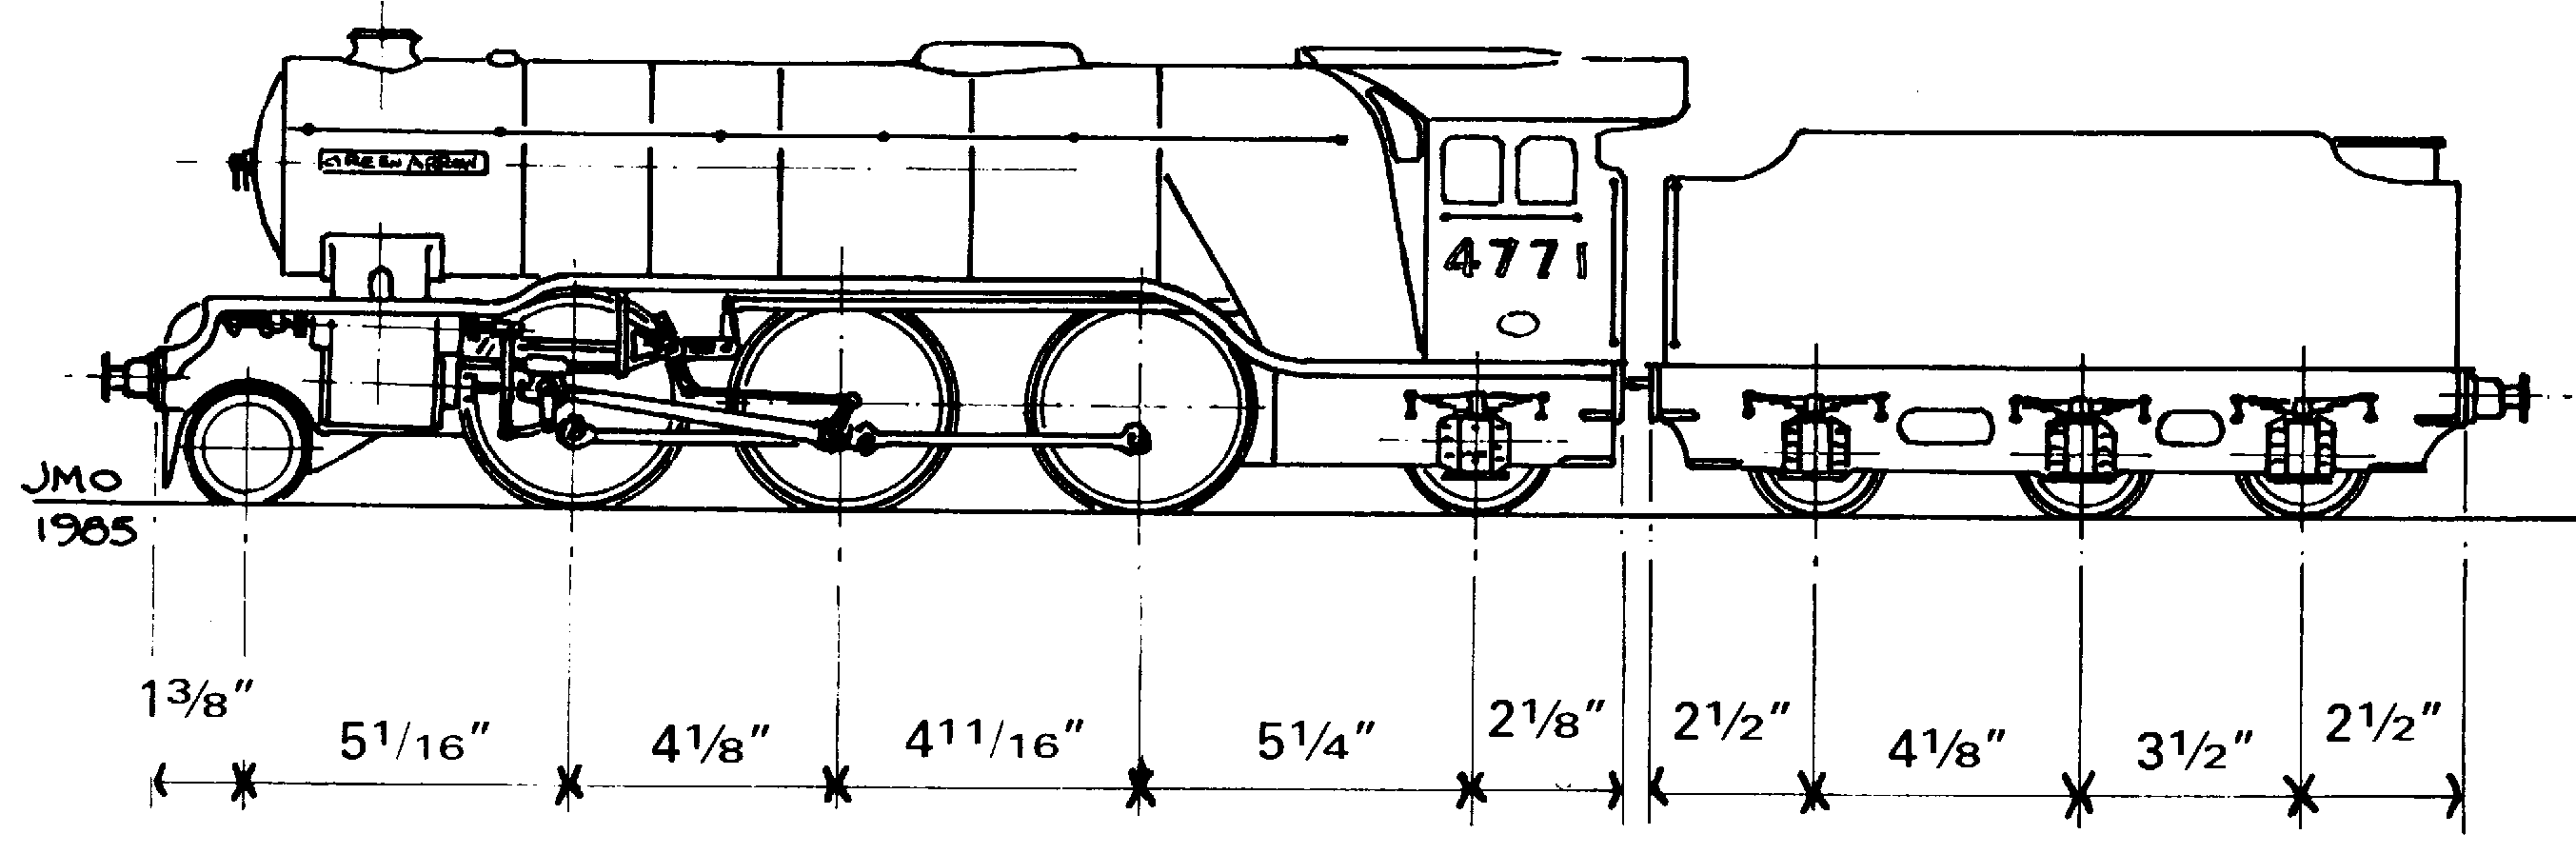 Green Arrow steam train blueprint